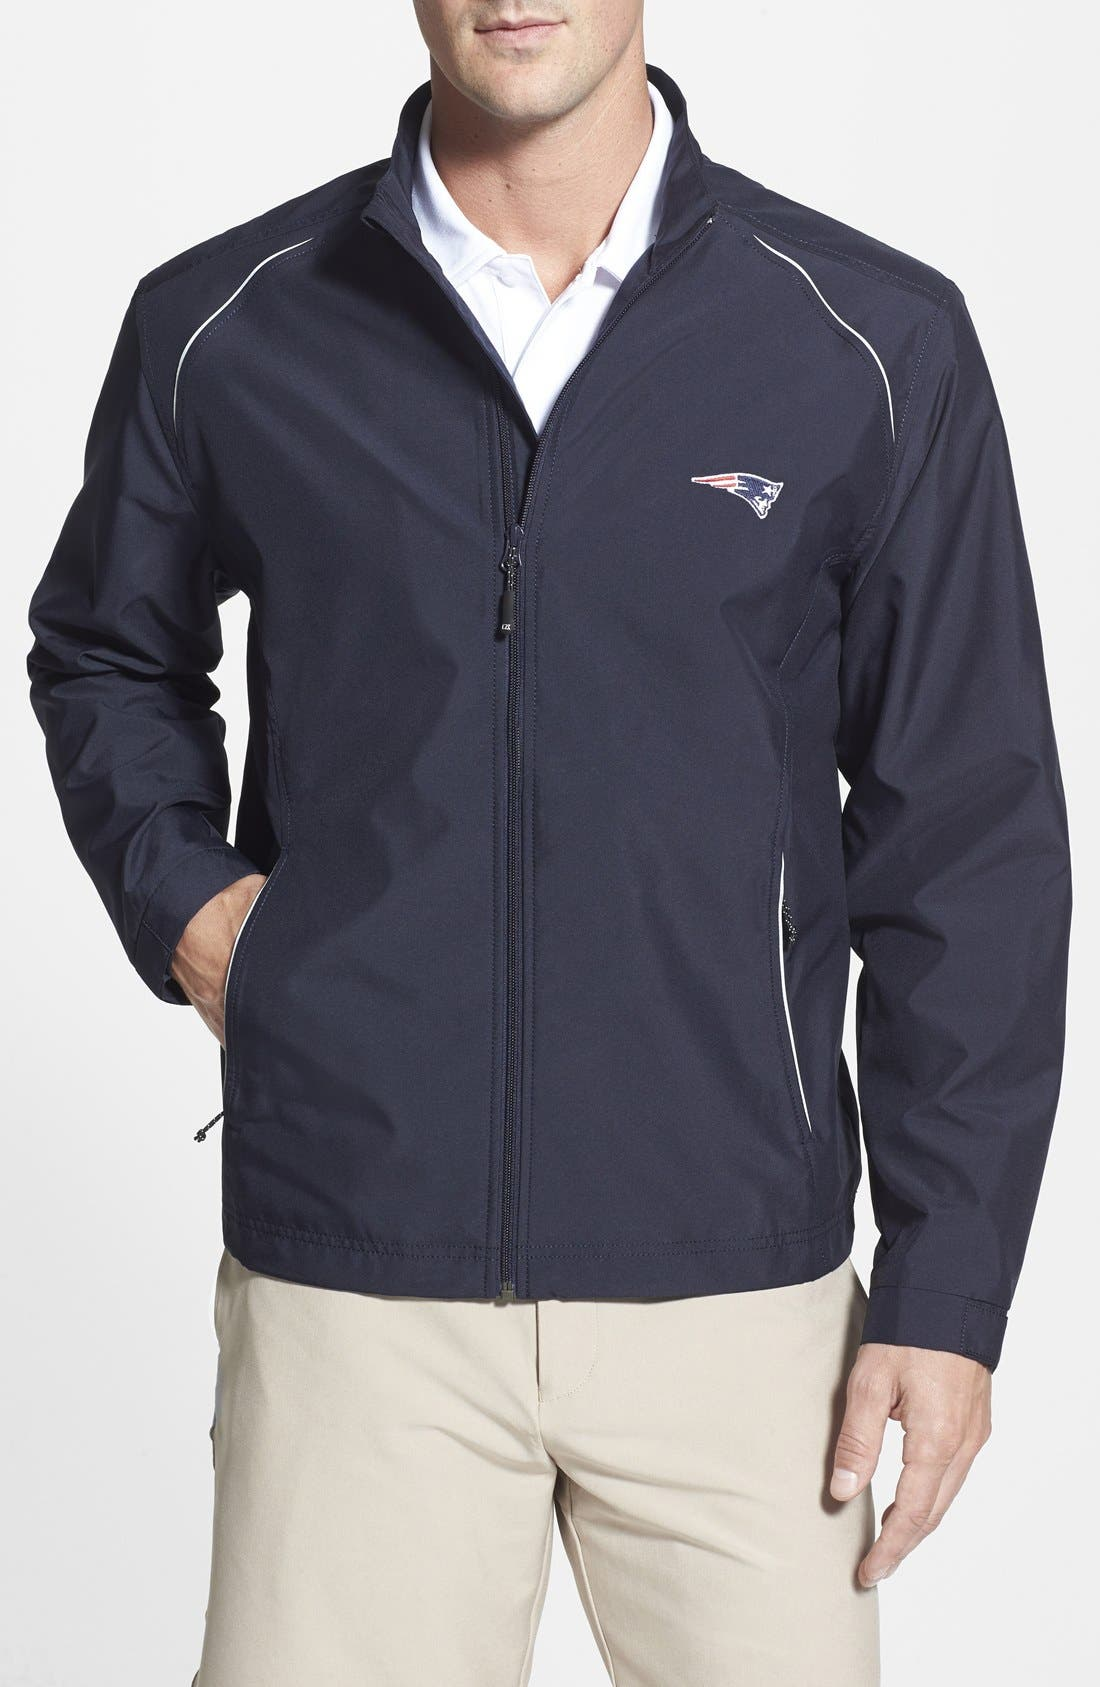 Cutter & Buck 'New England Patriots - Beacon' WeatherTec Wind & Water Resistant Jacket (Big & Tall)